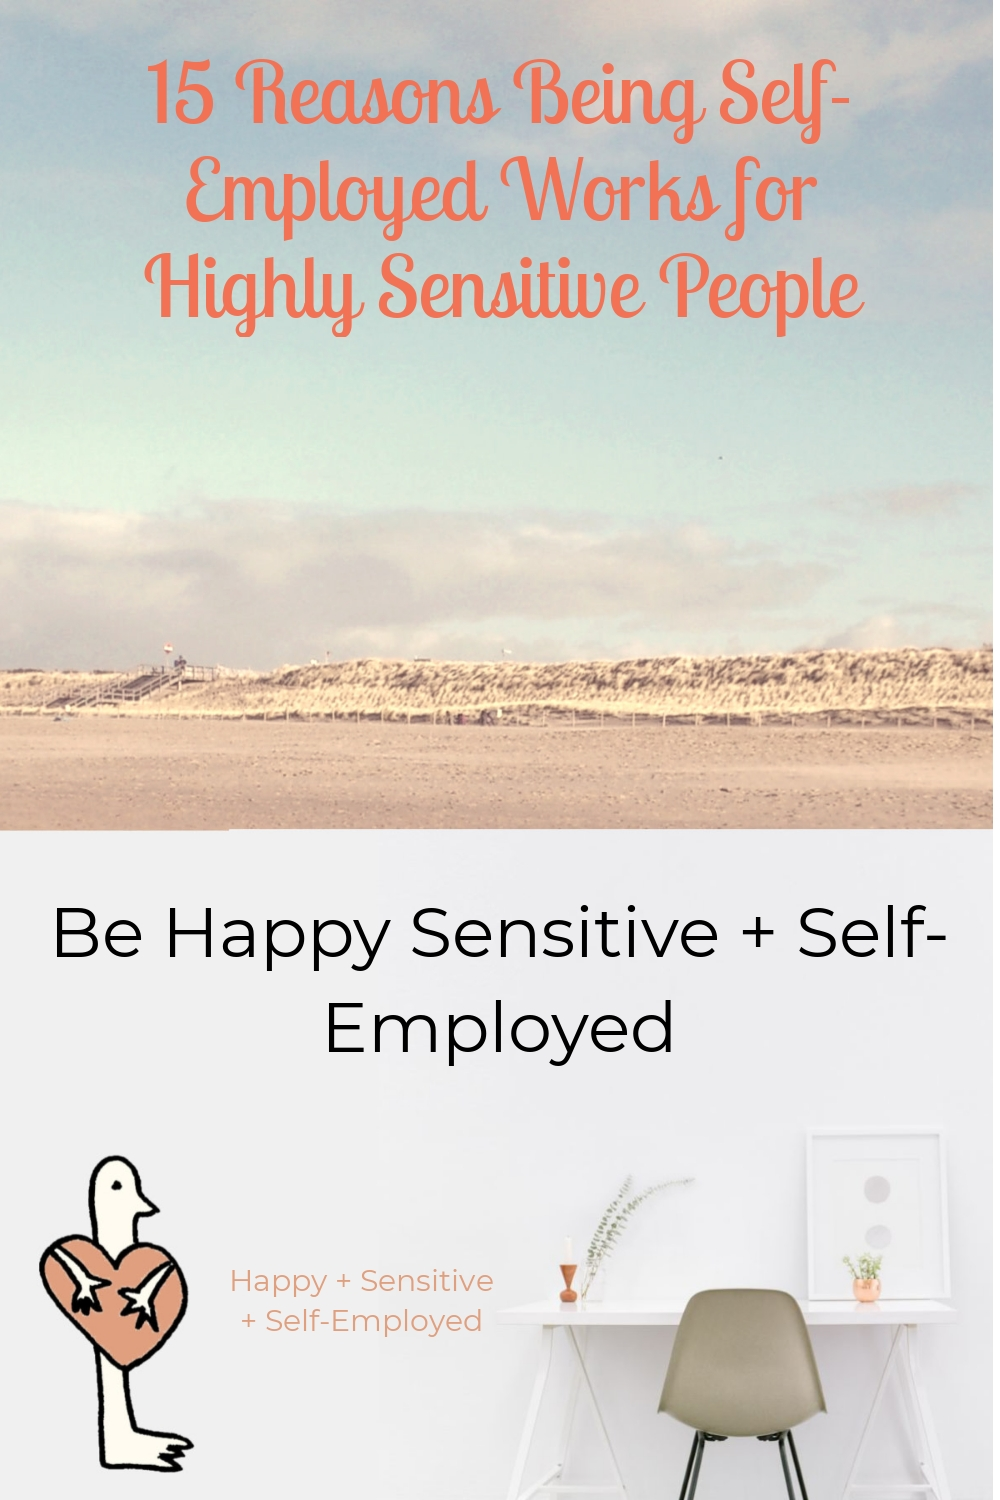 15 Reasons Being Self-Employed Works for Highly Sensitive People